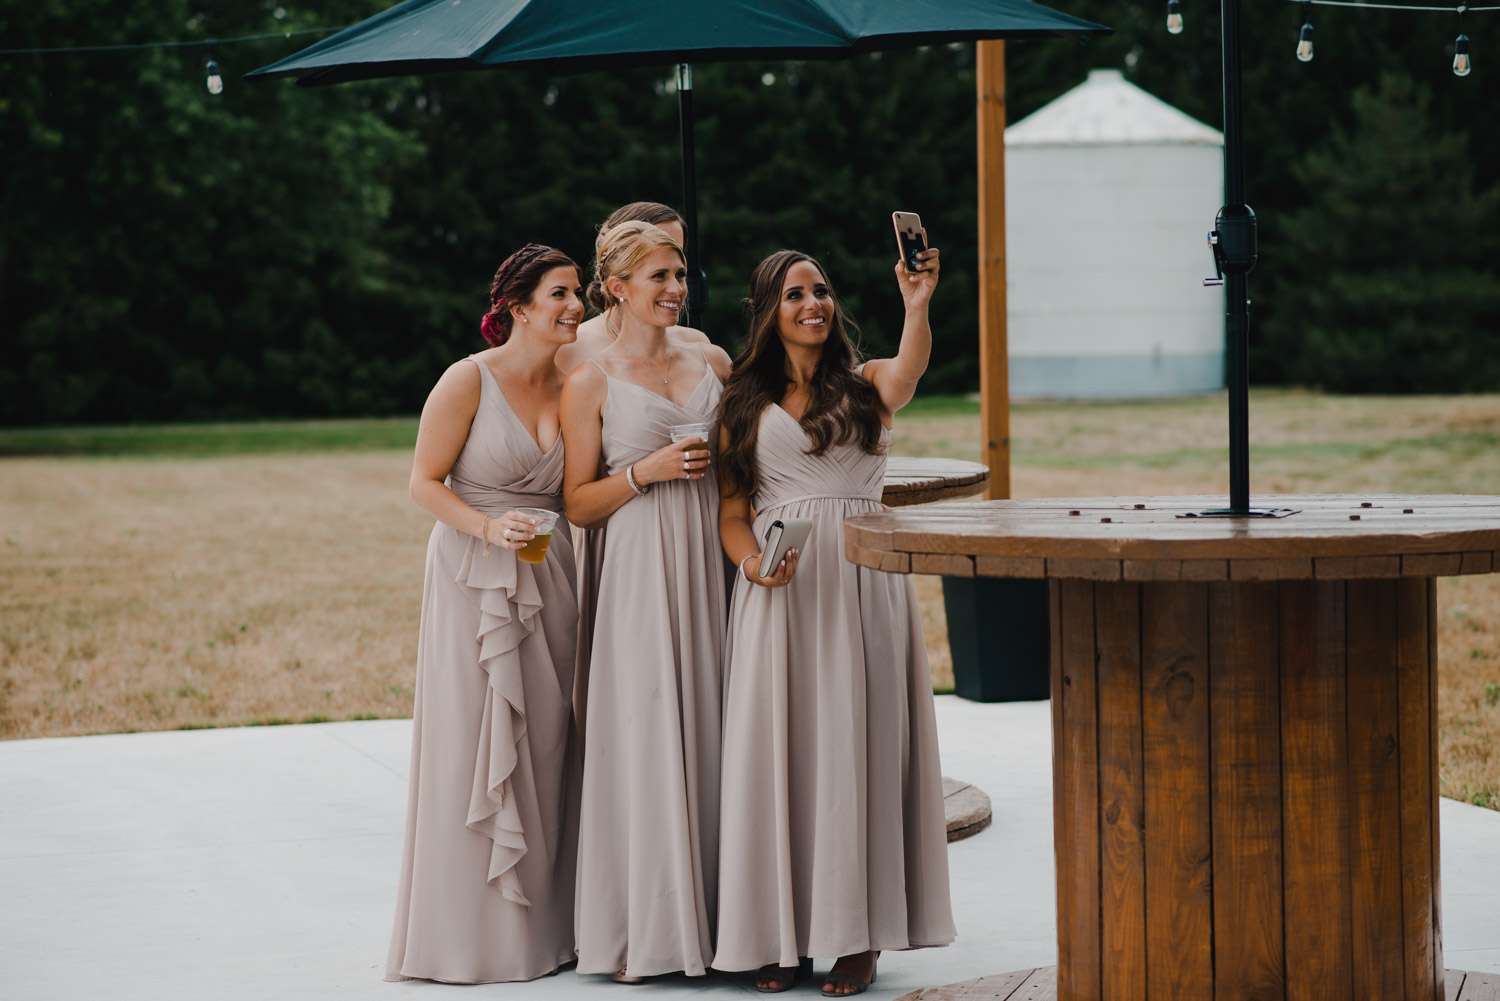 The bridesmaids all crowd together to pose for a selfie